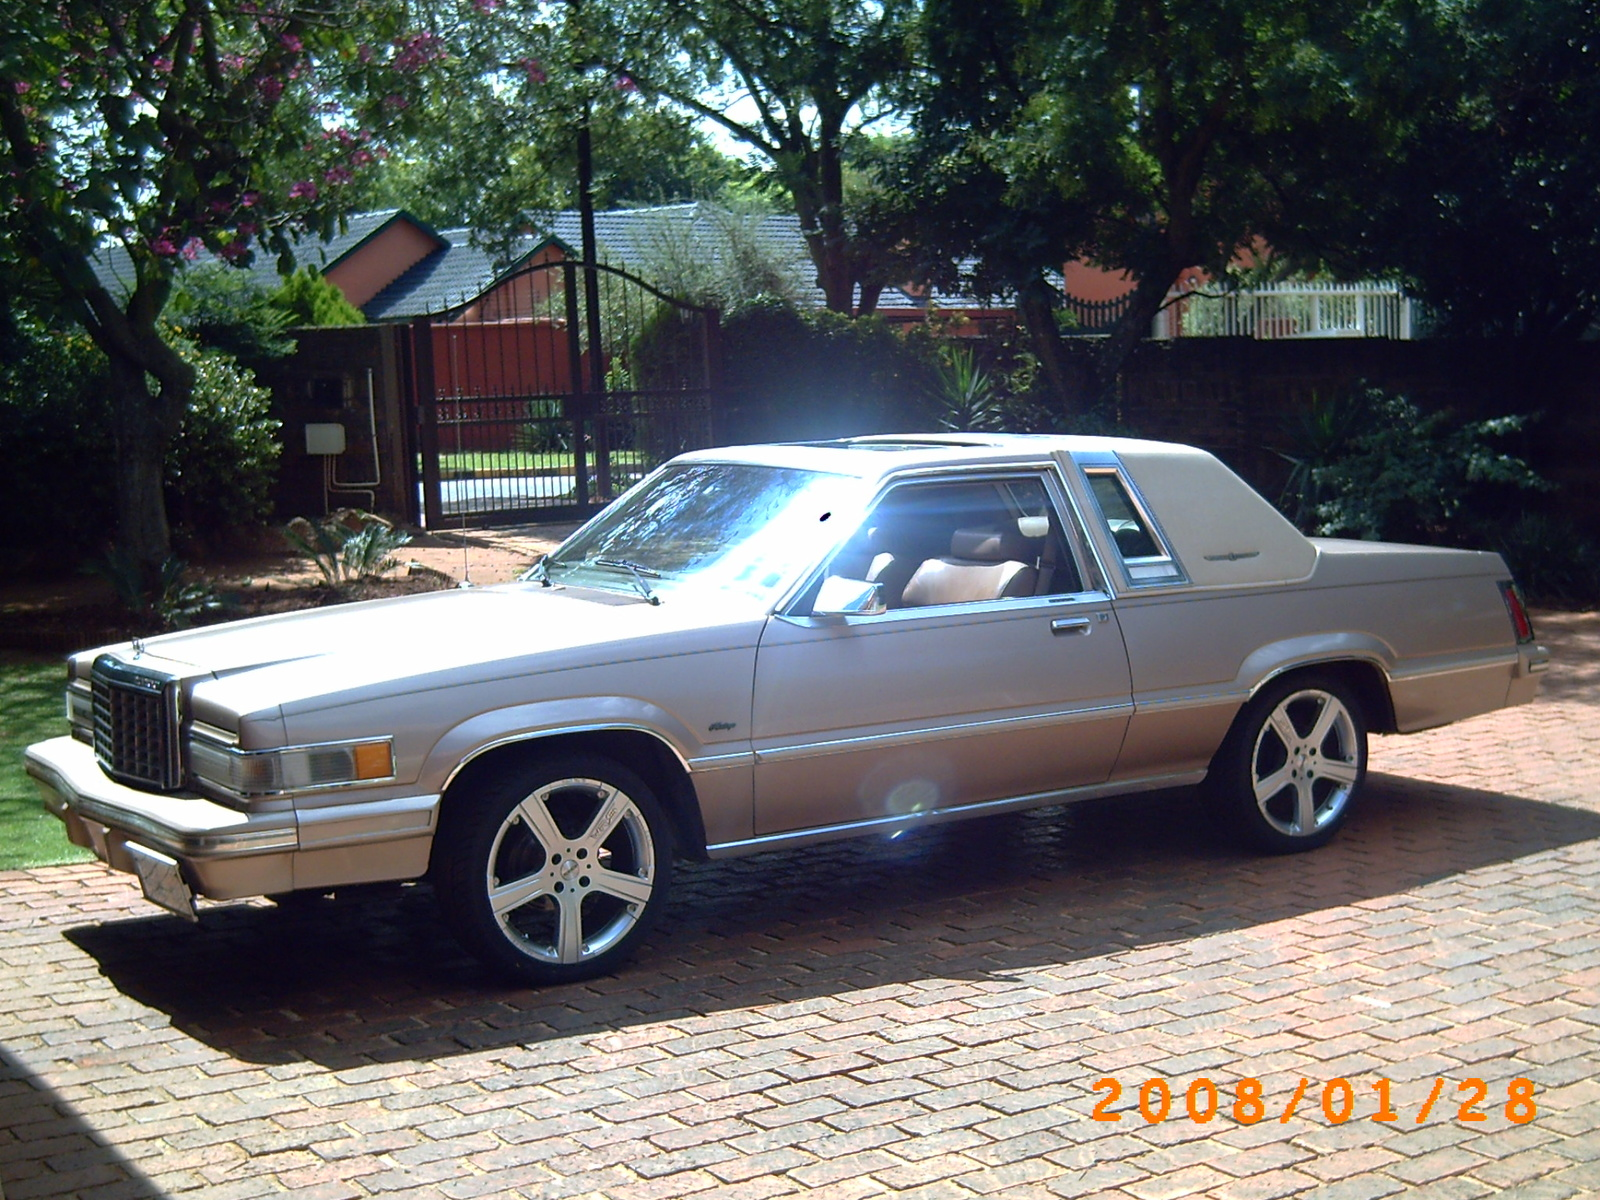 1982 ford fairmont related keywords amp suggestions 1982 ford fairmont